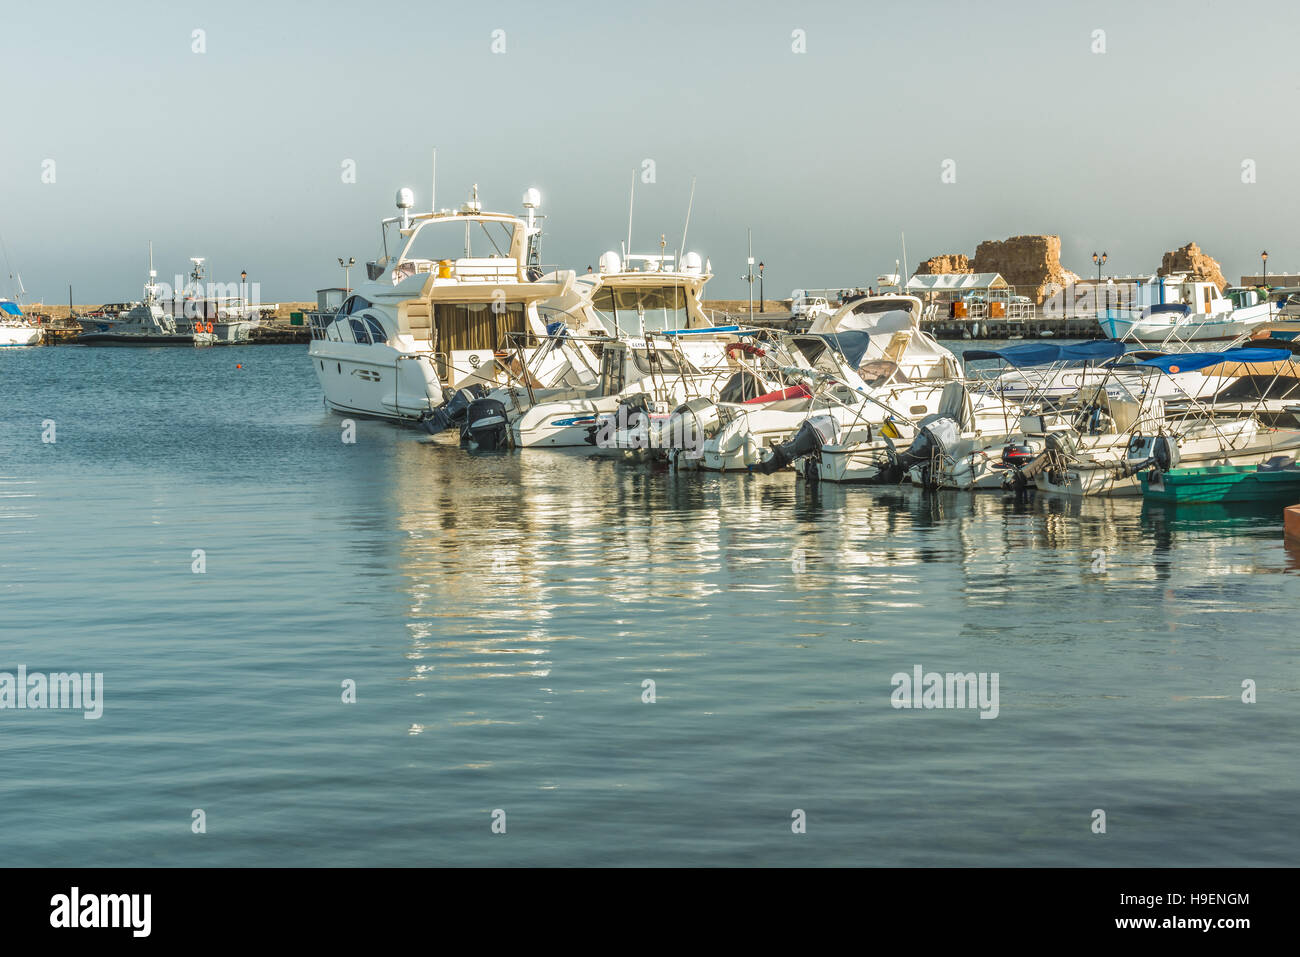 Ships in the Bay of Paphos, Cyprus. - Stock Image